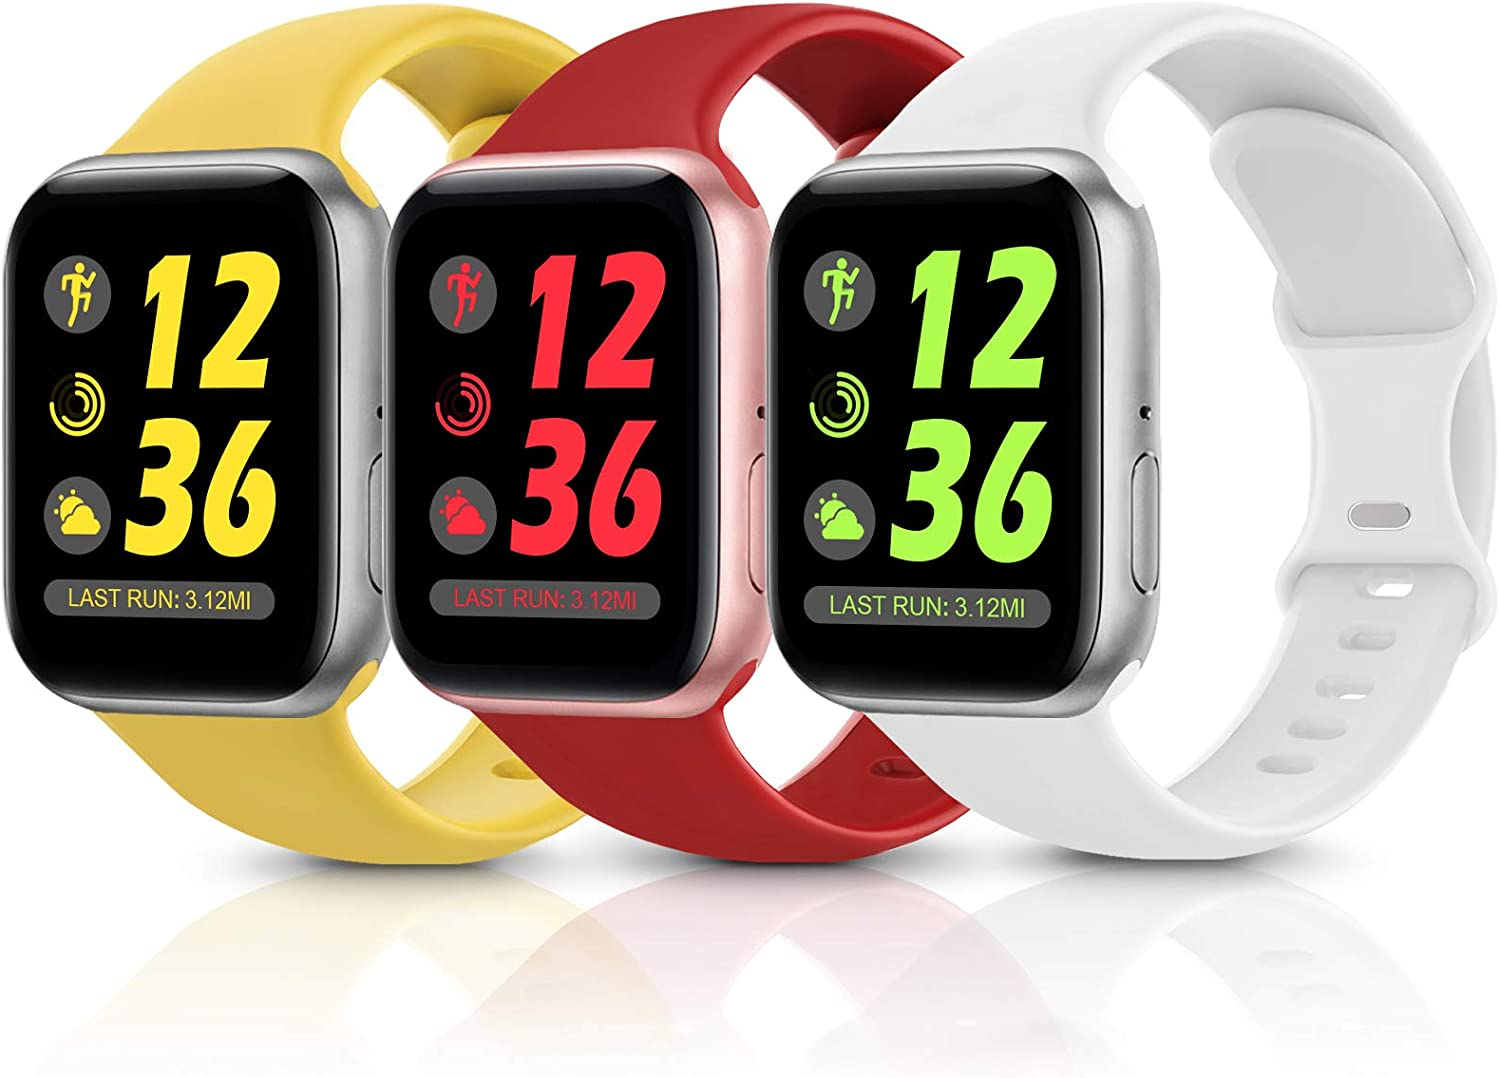 Sport Silicone Band Compatible with Apple Watch Bands 38mm 40mm 42mm 44mm,Soft Replacement Wristbands for iWatch Series 1/2/3/4/5/6/SE,Women Men,3 Pack(Red/White/Yellow,38mm/40mm-S/M)